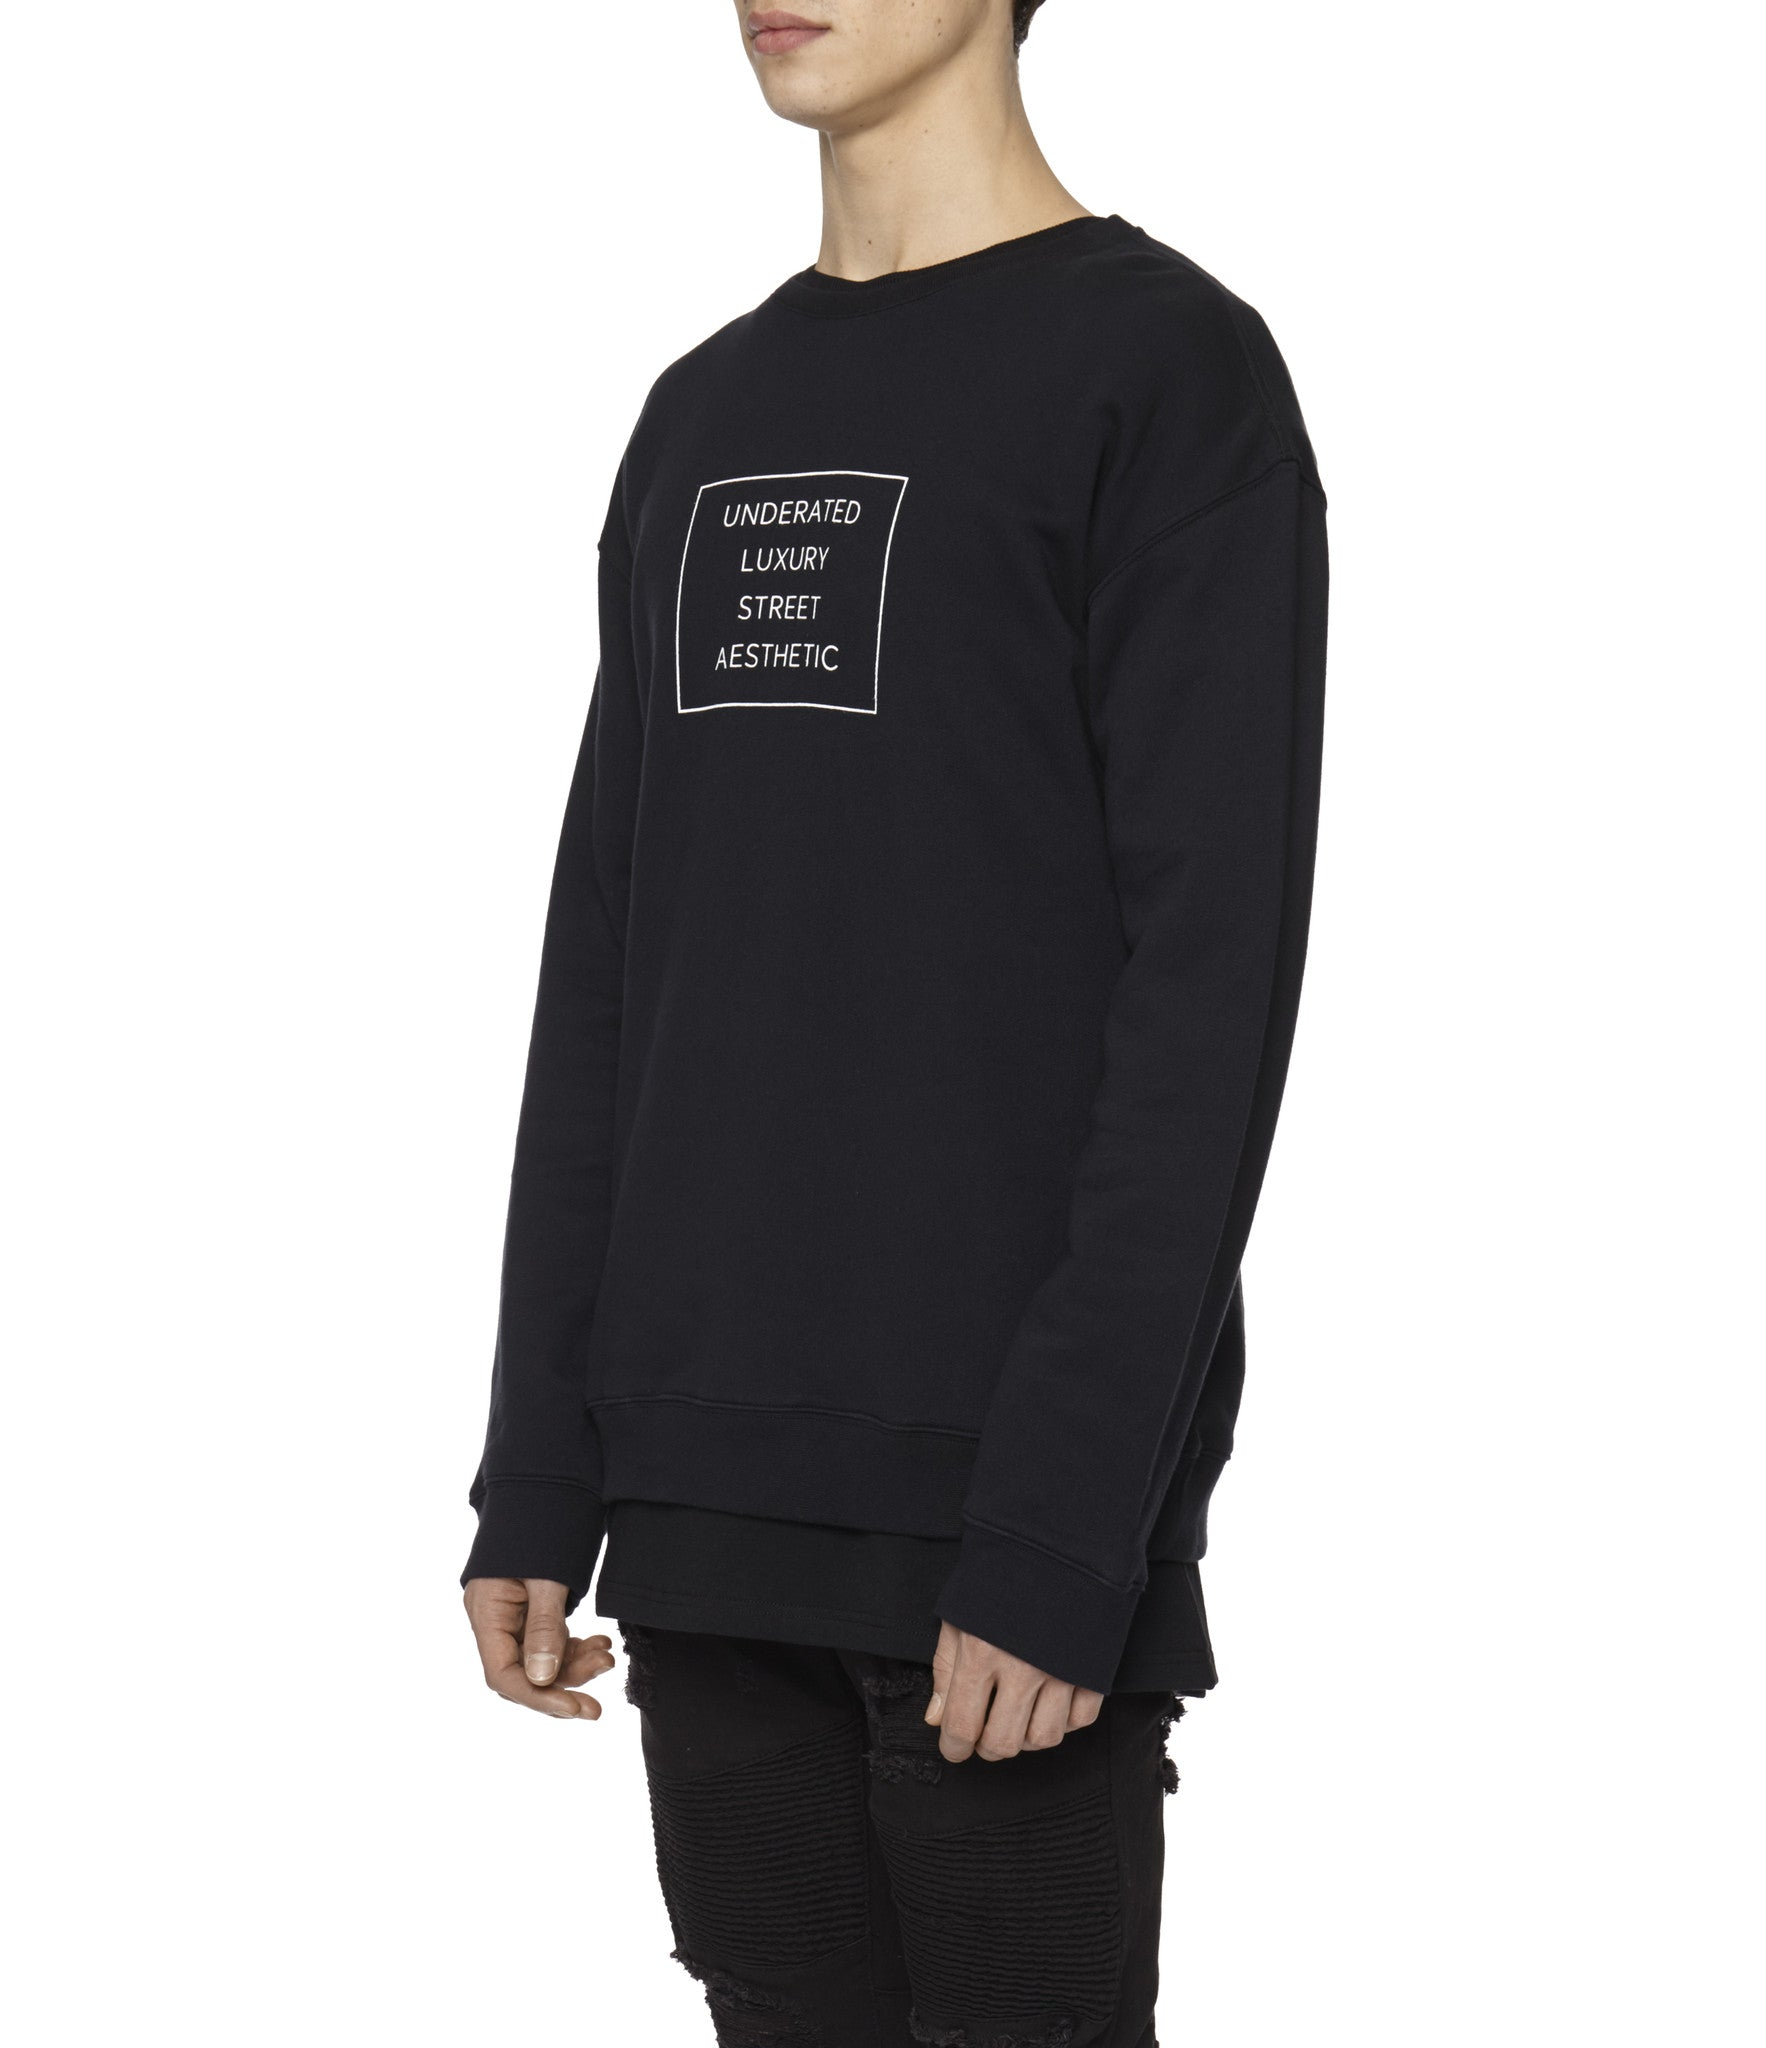 SW314 Box Logo Printed Sweatshirt - Black - underated london - underatedco - 5